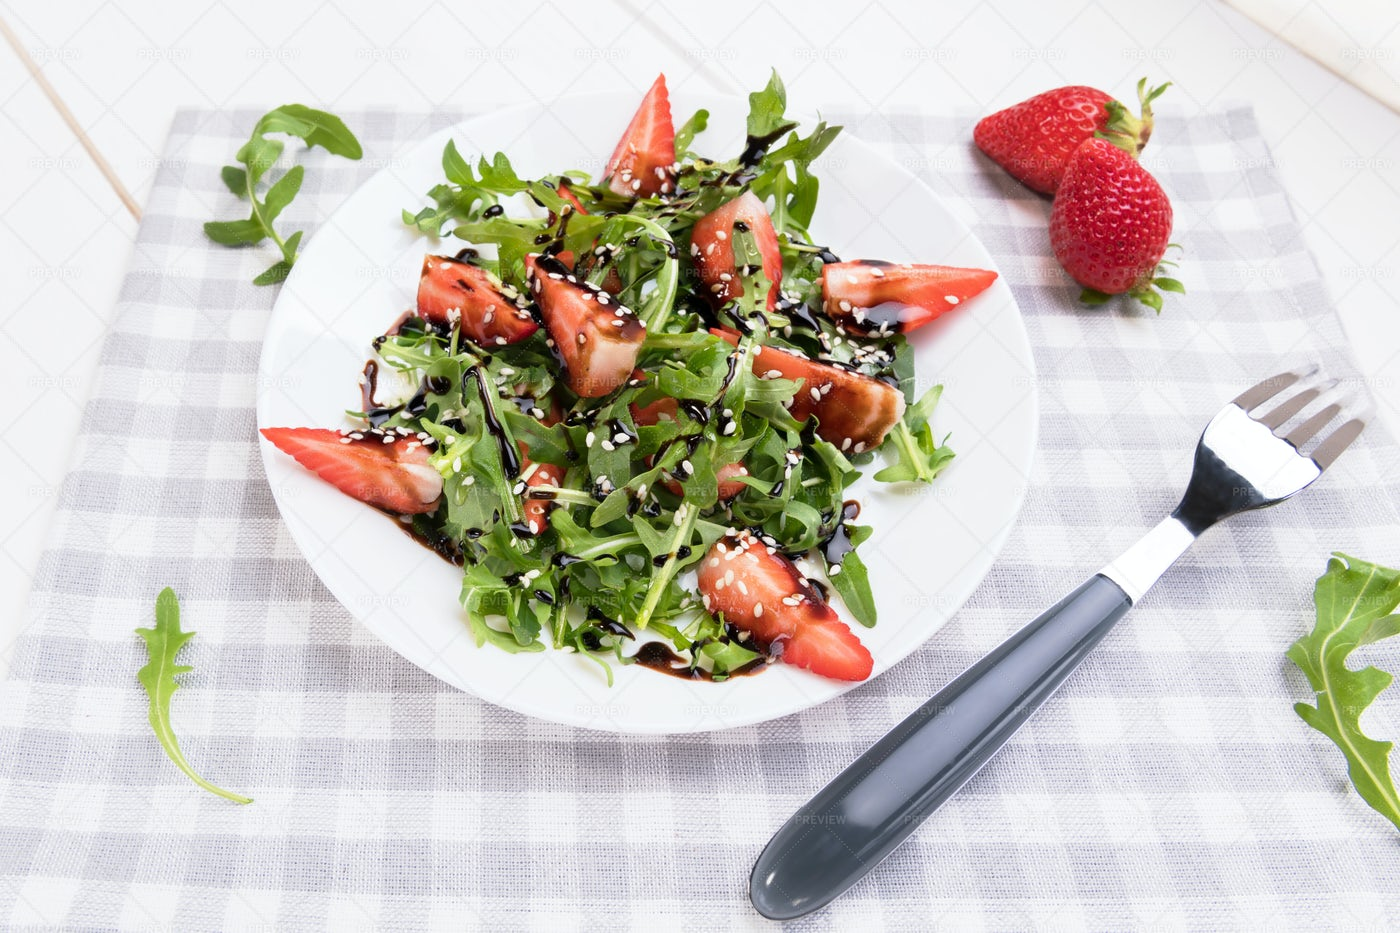 Salad With Arugula And Strawberries: Stock Photos